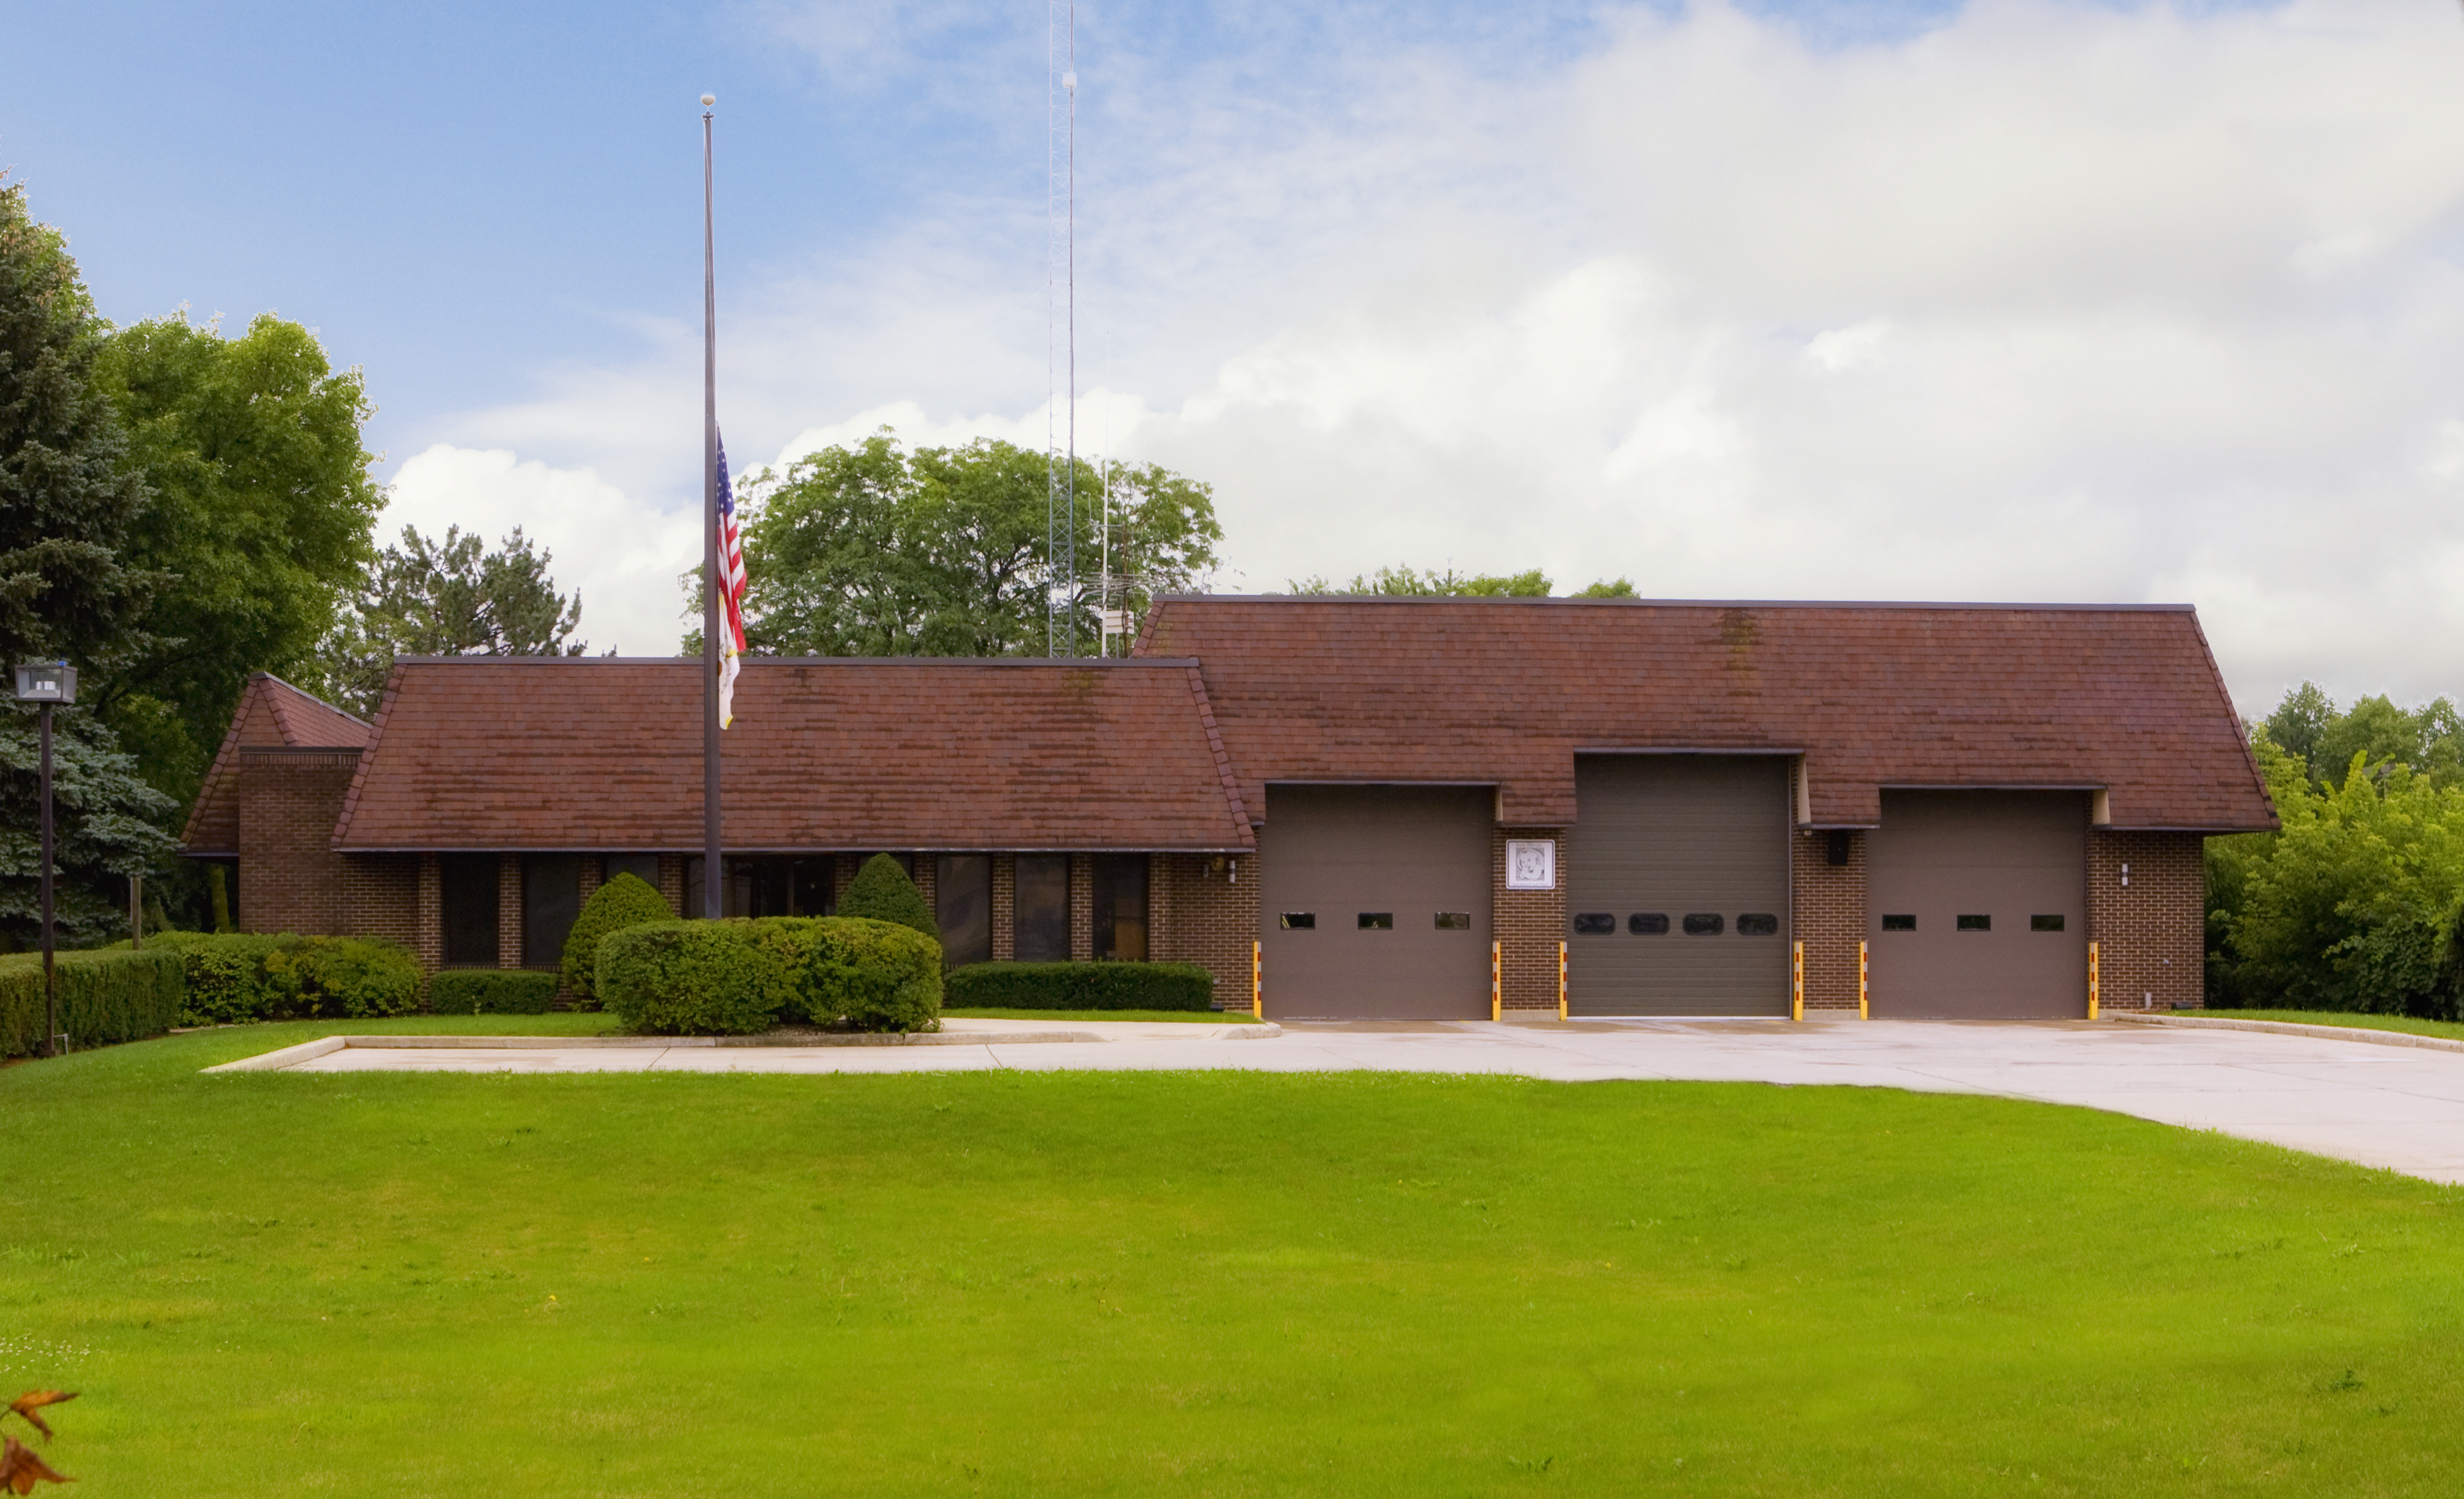 Buffalo Grove Fire Department Station 25